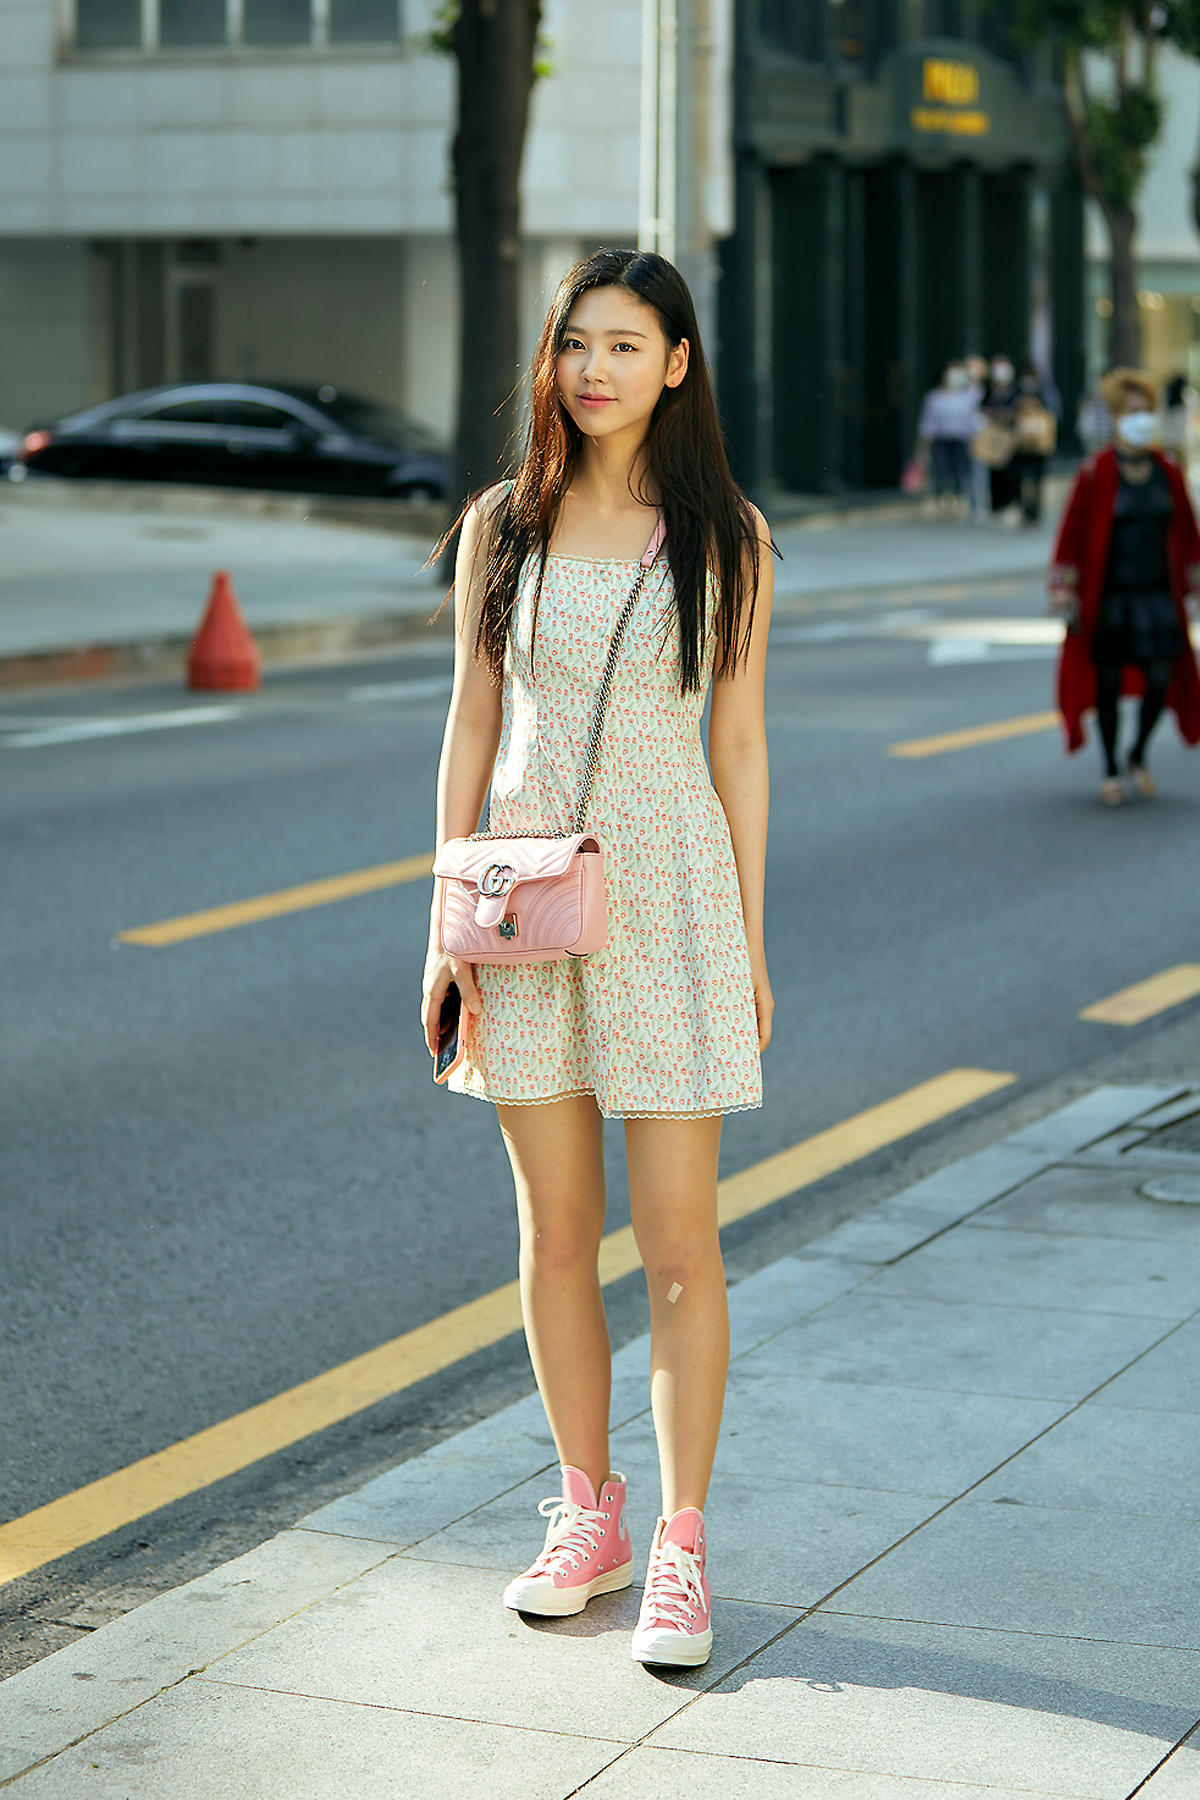 Street fashion Women's Style in Seoul May 2020